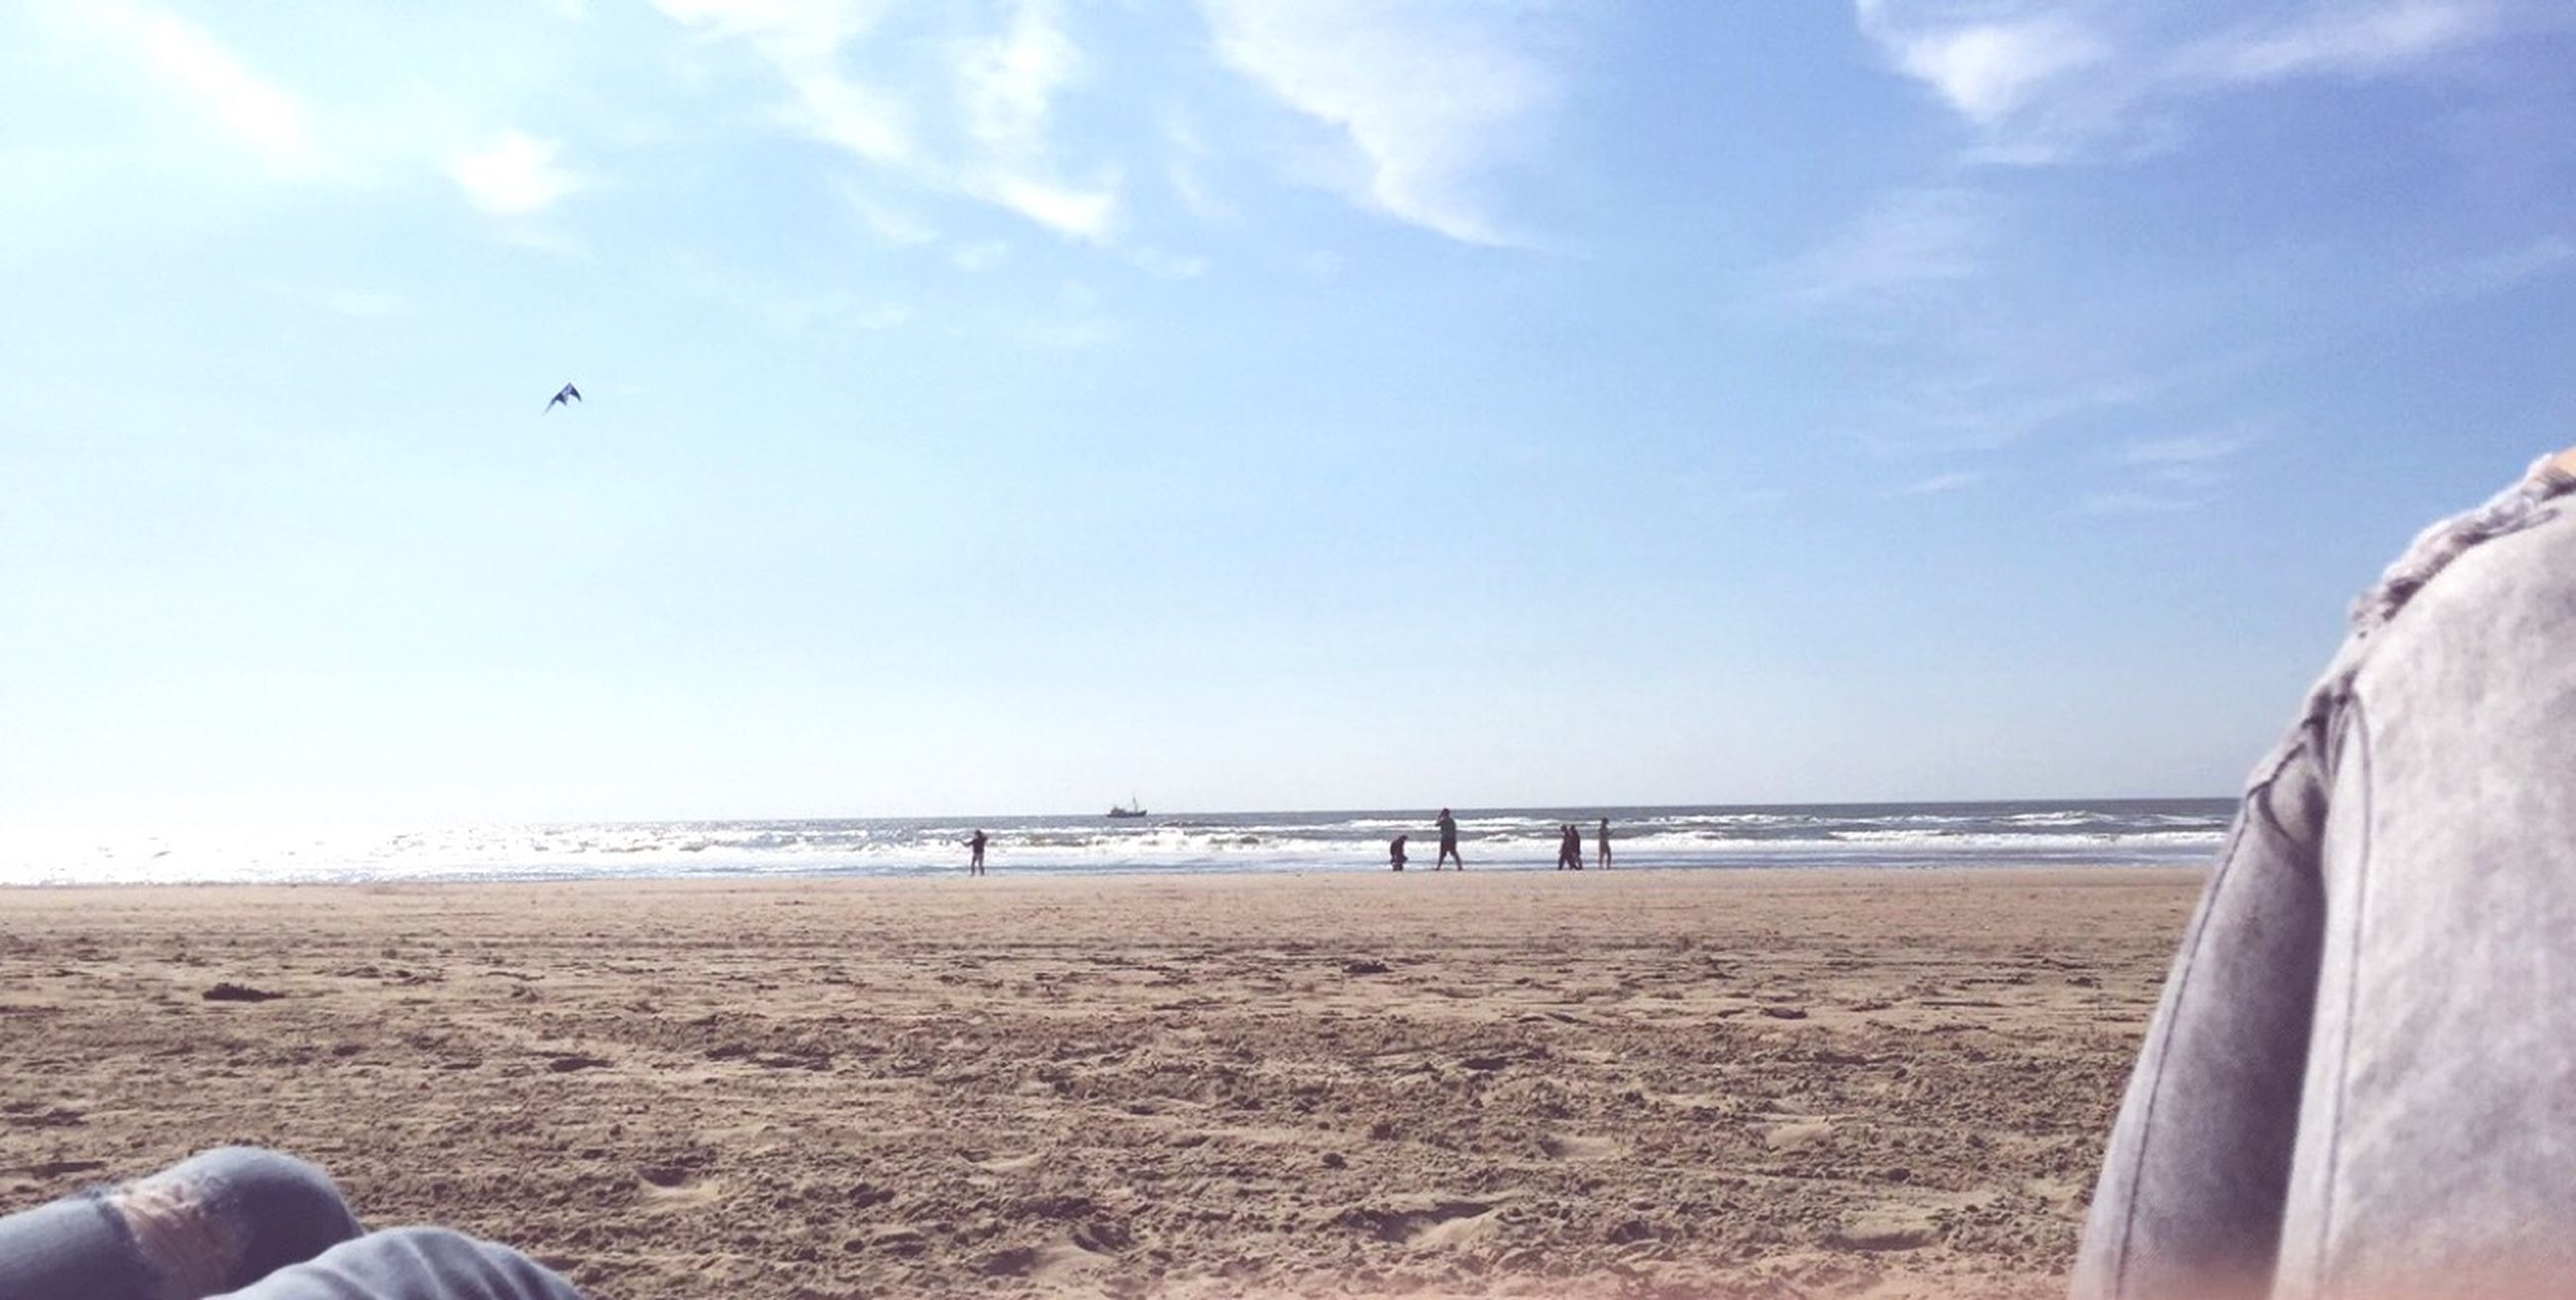 sea, beach, sand, leisure activity, men, lifestyles, sky, water, horizon over water, scenics, unrecognizable person, tranquil scene, shore, beauty in nature, nature, vacations, tranquility, travel